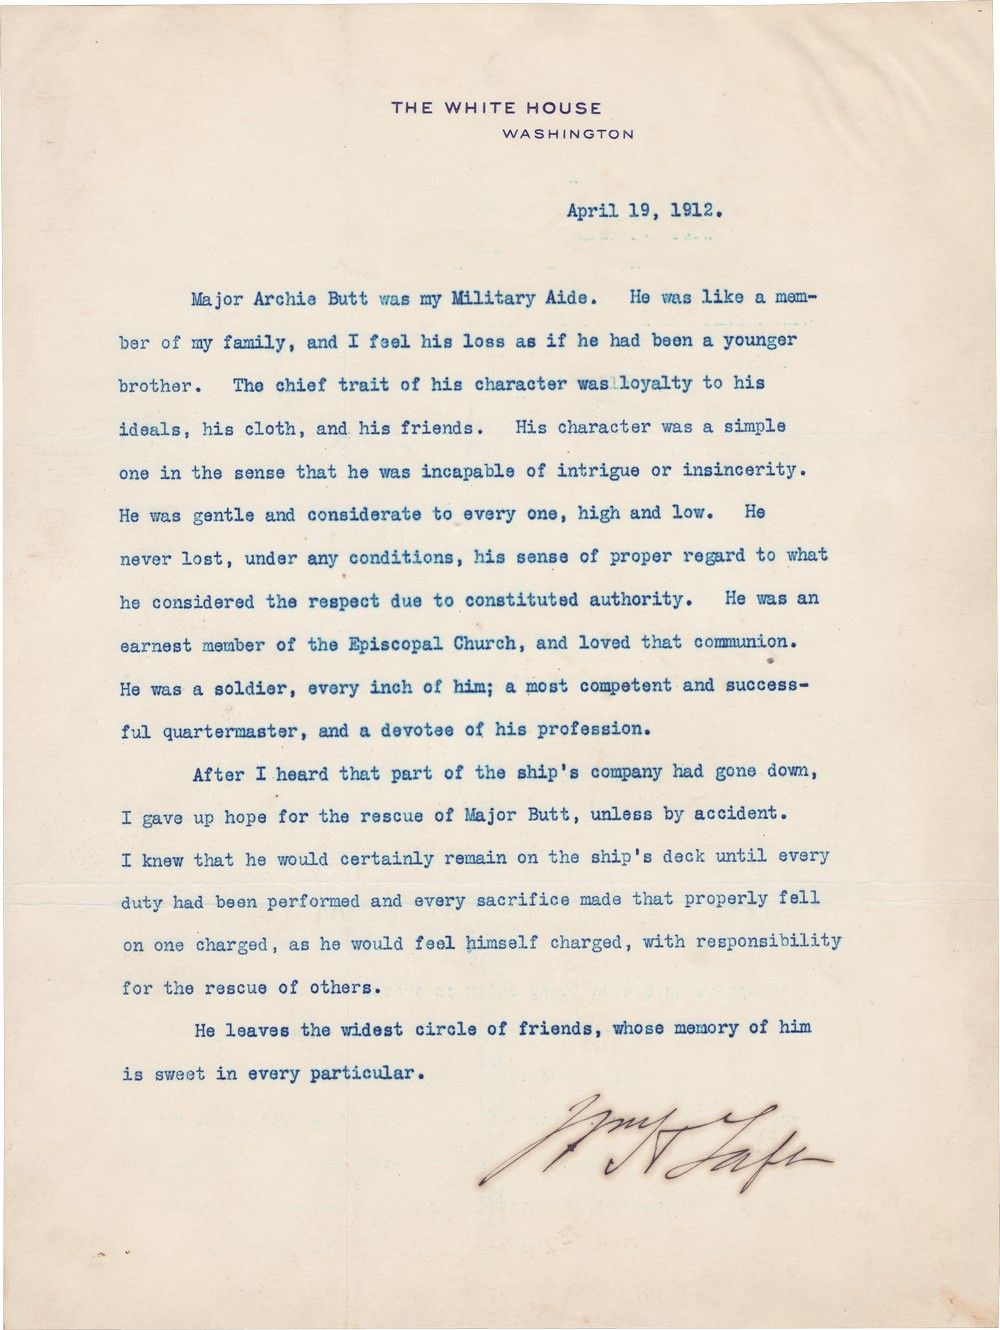 President Taft's Eulogy for his Aide, Archibald Butt, Who Went Down with the Titanic Just Days Before